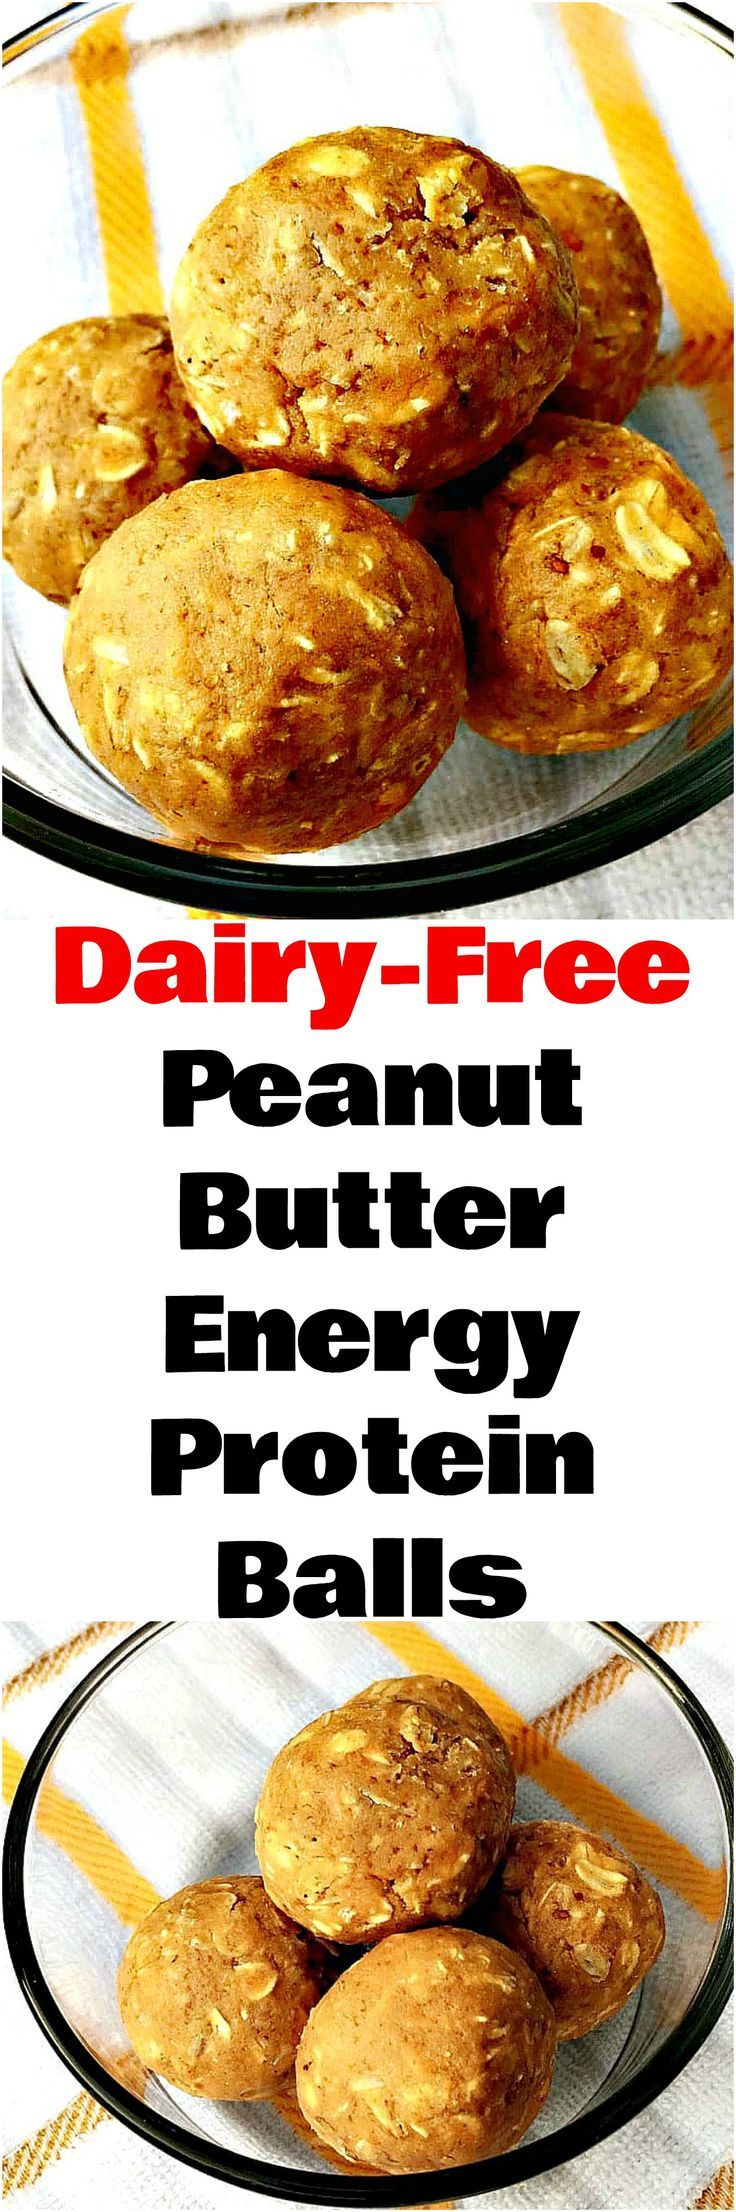 Dairy-Free Peanut Butter Energy Protein Balls are a quick and easy vegan recipe with fuel for energy. This recipe is no-bake and perfect for meal prep using Quest Protein powder. #Protein #ProteinRecipes #Breakfast #DairyFree #DairyFreeRecipes #Keto #KetoRecipes #QuestProtein